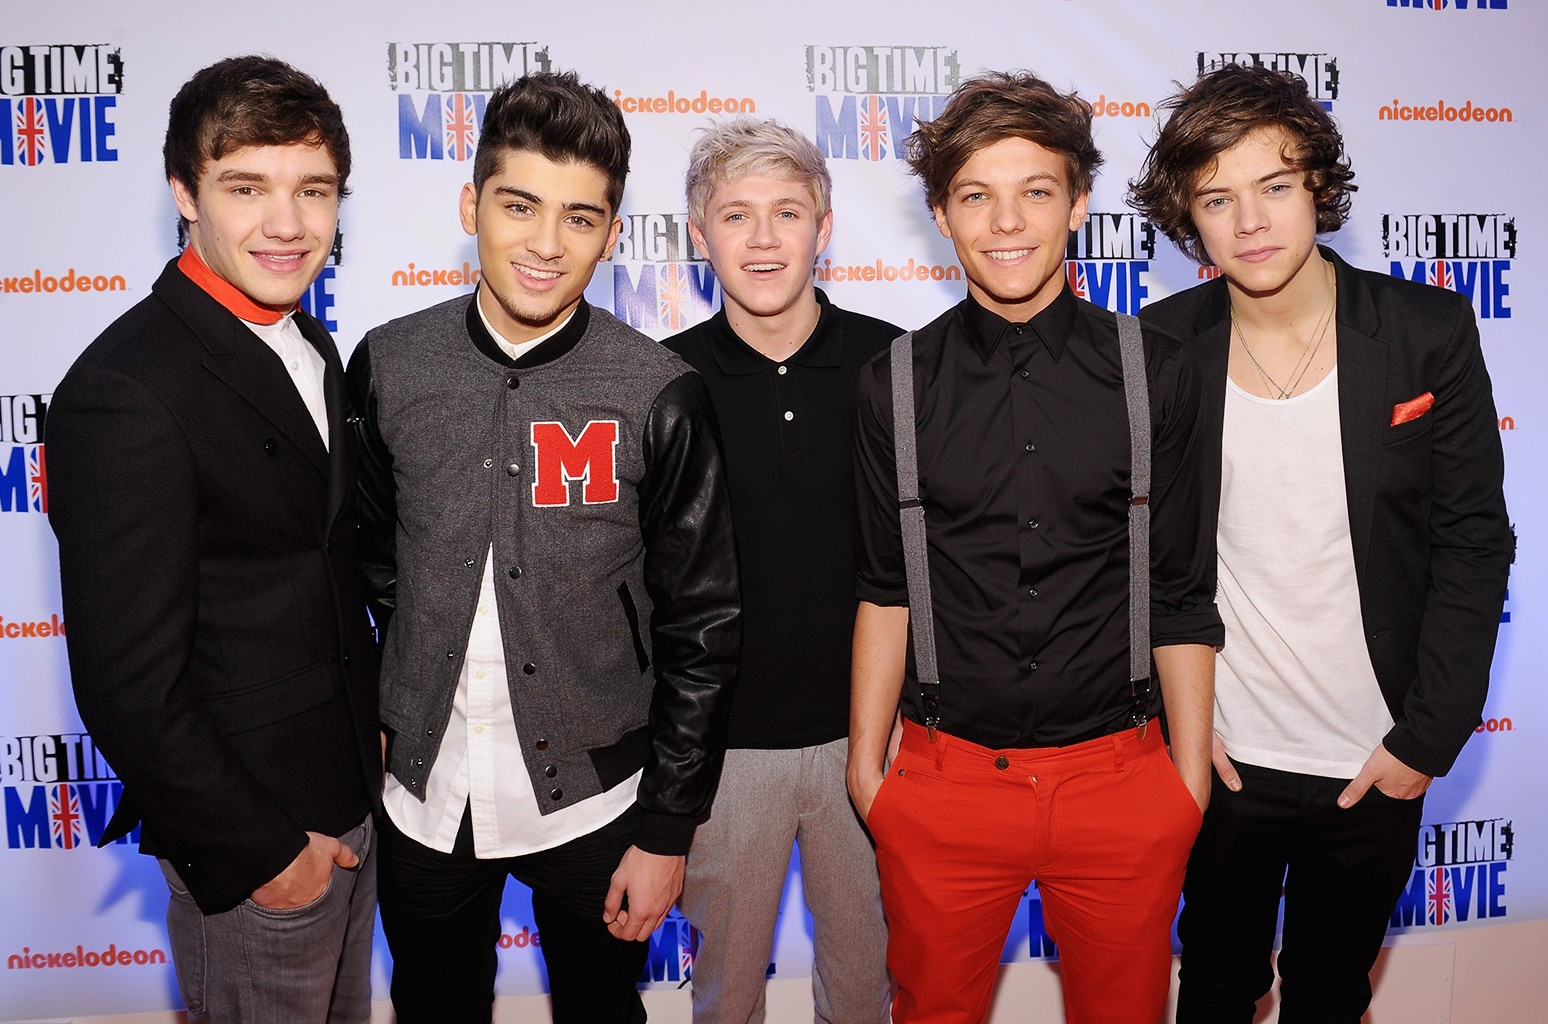 """One Direction attend Nickelodeon Hosts Orange Carpet Premiere For Original TV Movie """"Big Time Movie"""" Starring Big Time Rush at 583 Park Avenue on March 8, 2012 in New York City."""